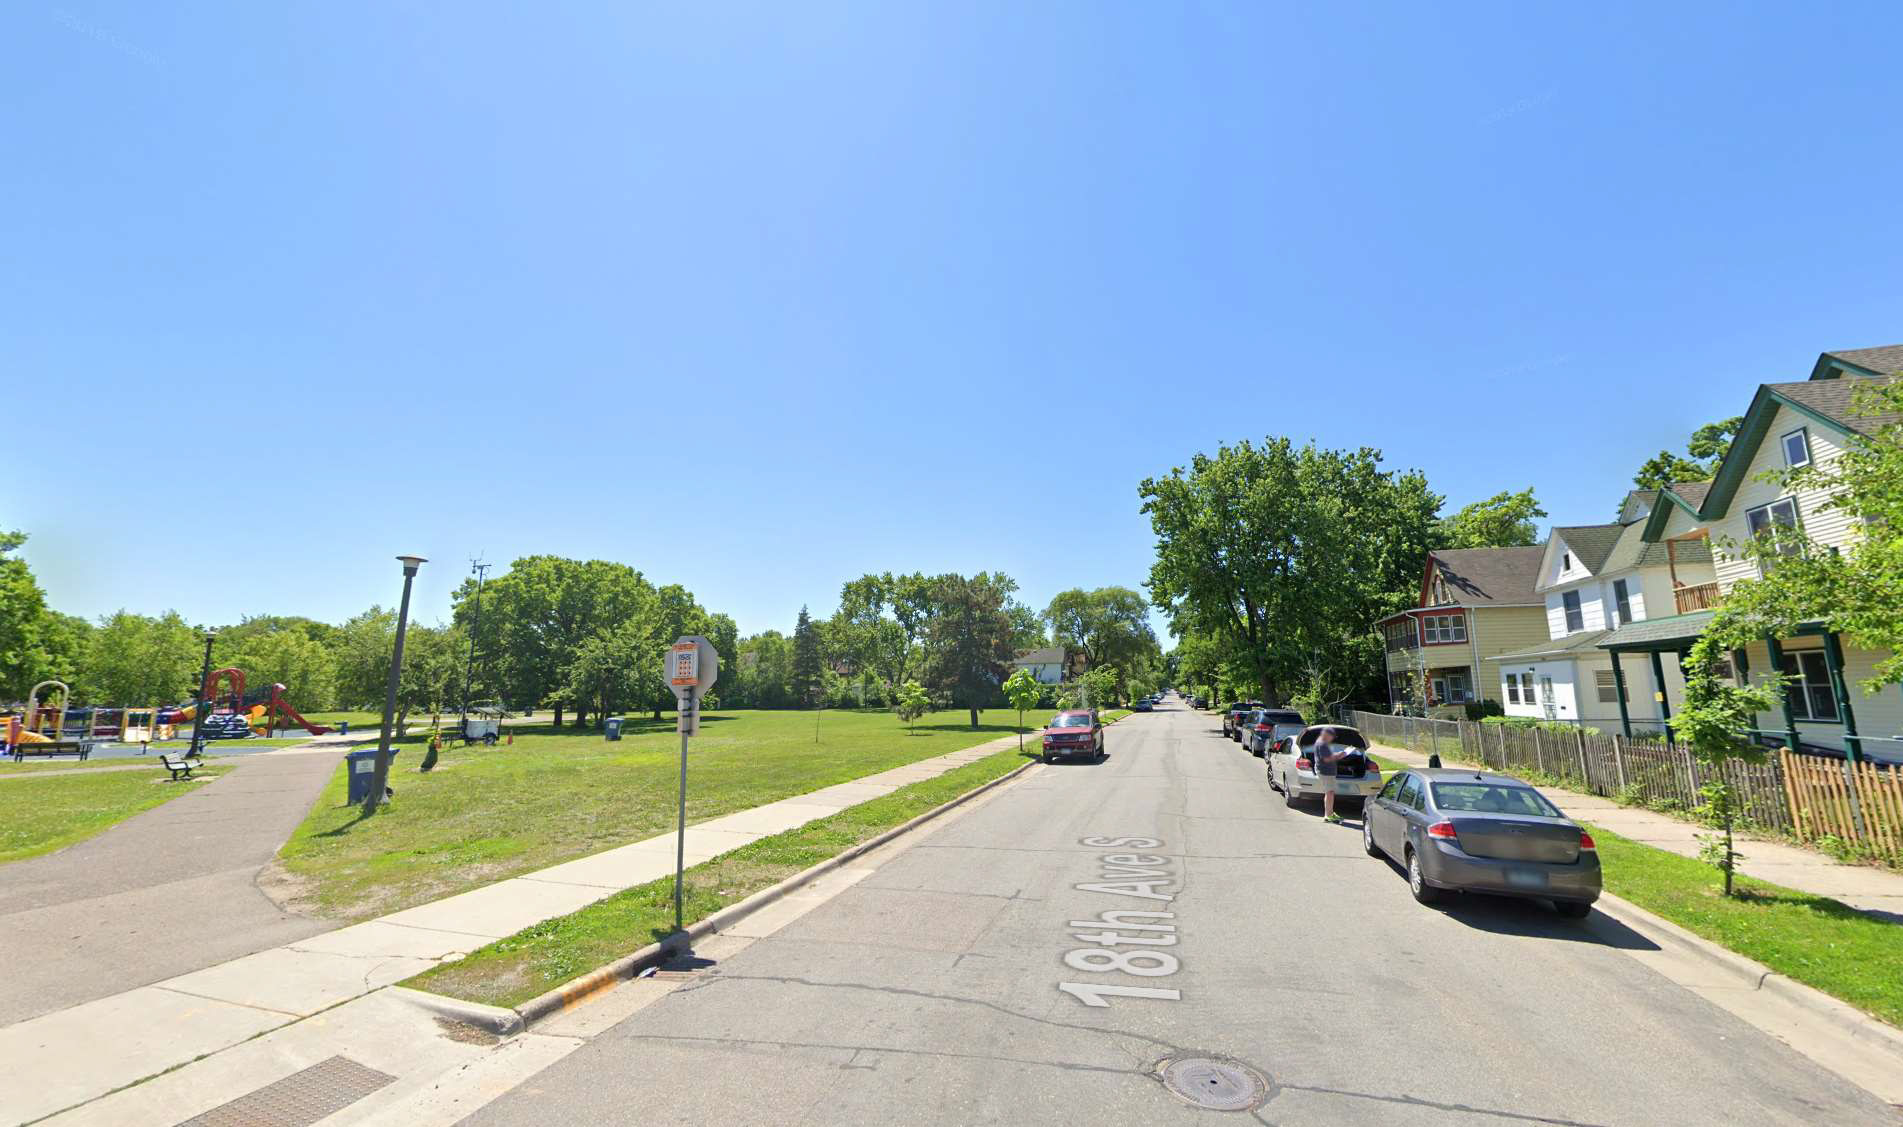 street view of very low opportunity neighborhood in Minneapolis, MN